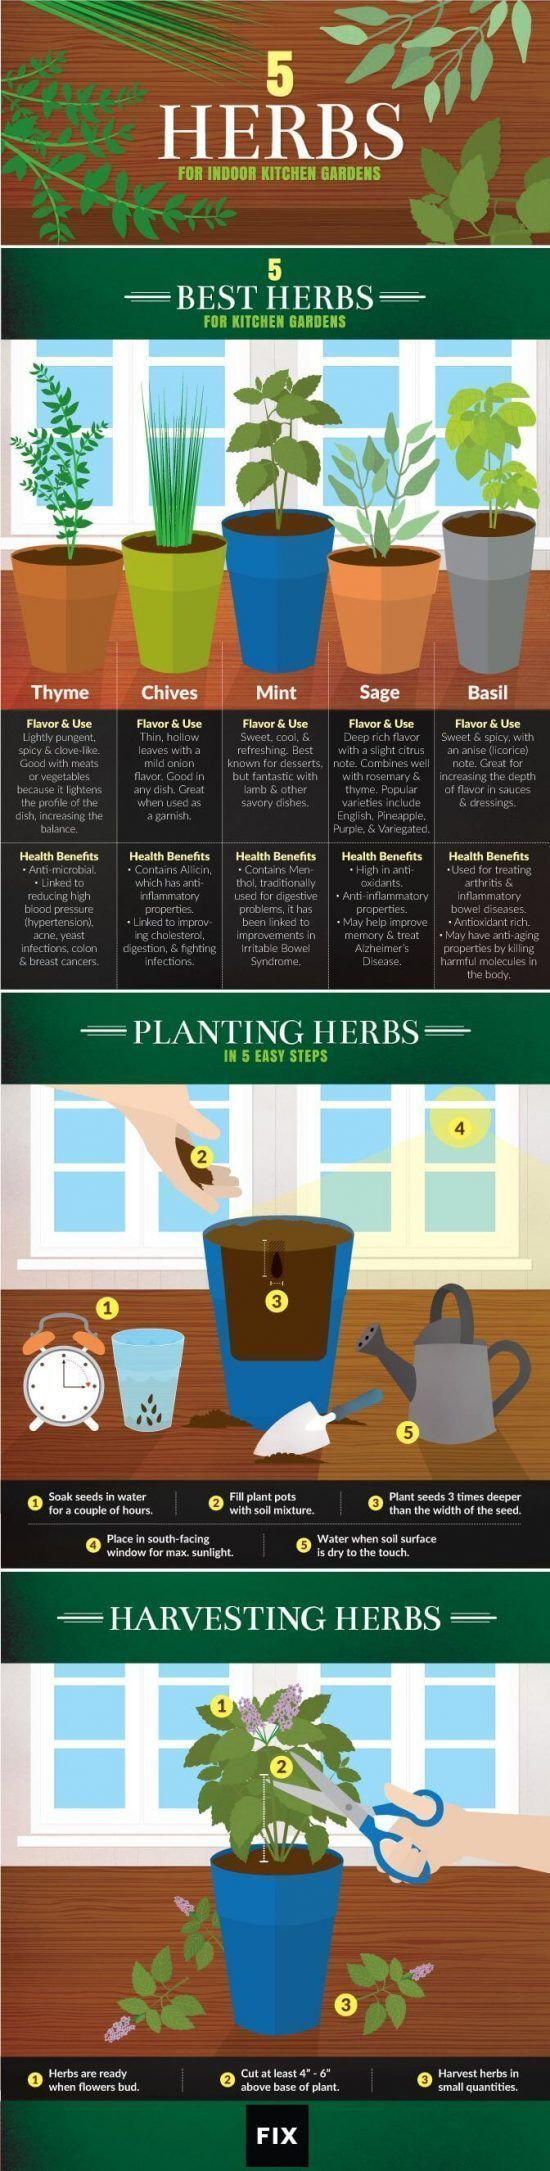 See which plants are the Best Herbs To Grow Indoors from seeds and how to achieve the best possible results! We've got a guide on sprouting, planting, growing and harvesting your indoor garden so you can enjoy fresh, bountiful herbs all year long. Be sure to watch the video too. #indoorgardening #herbsgardening